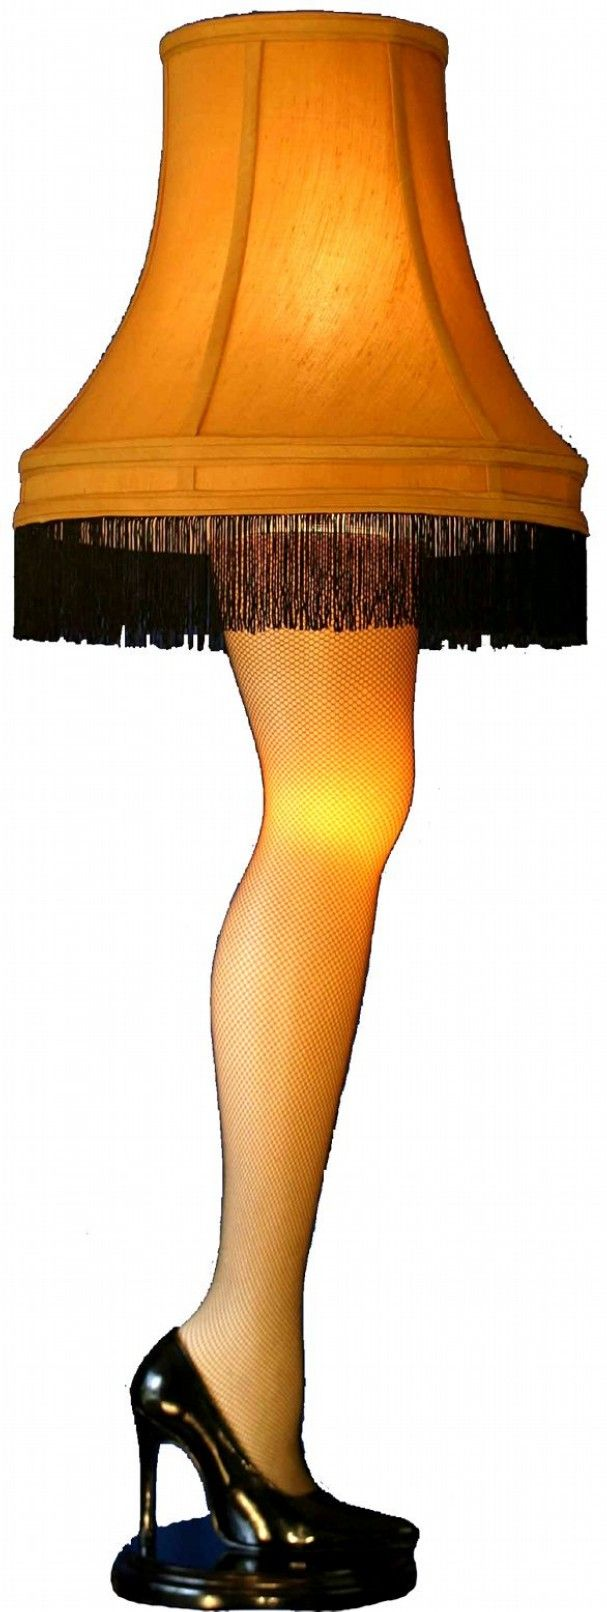 the leg lamp... a pop culture icon from the movie 'A Christmas ...